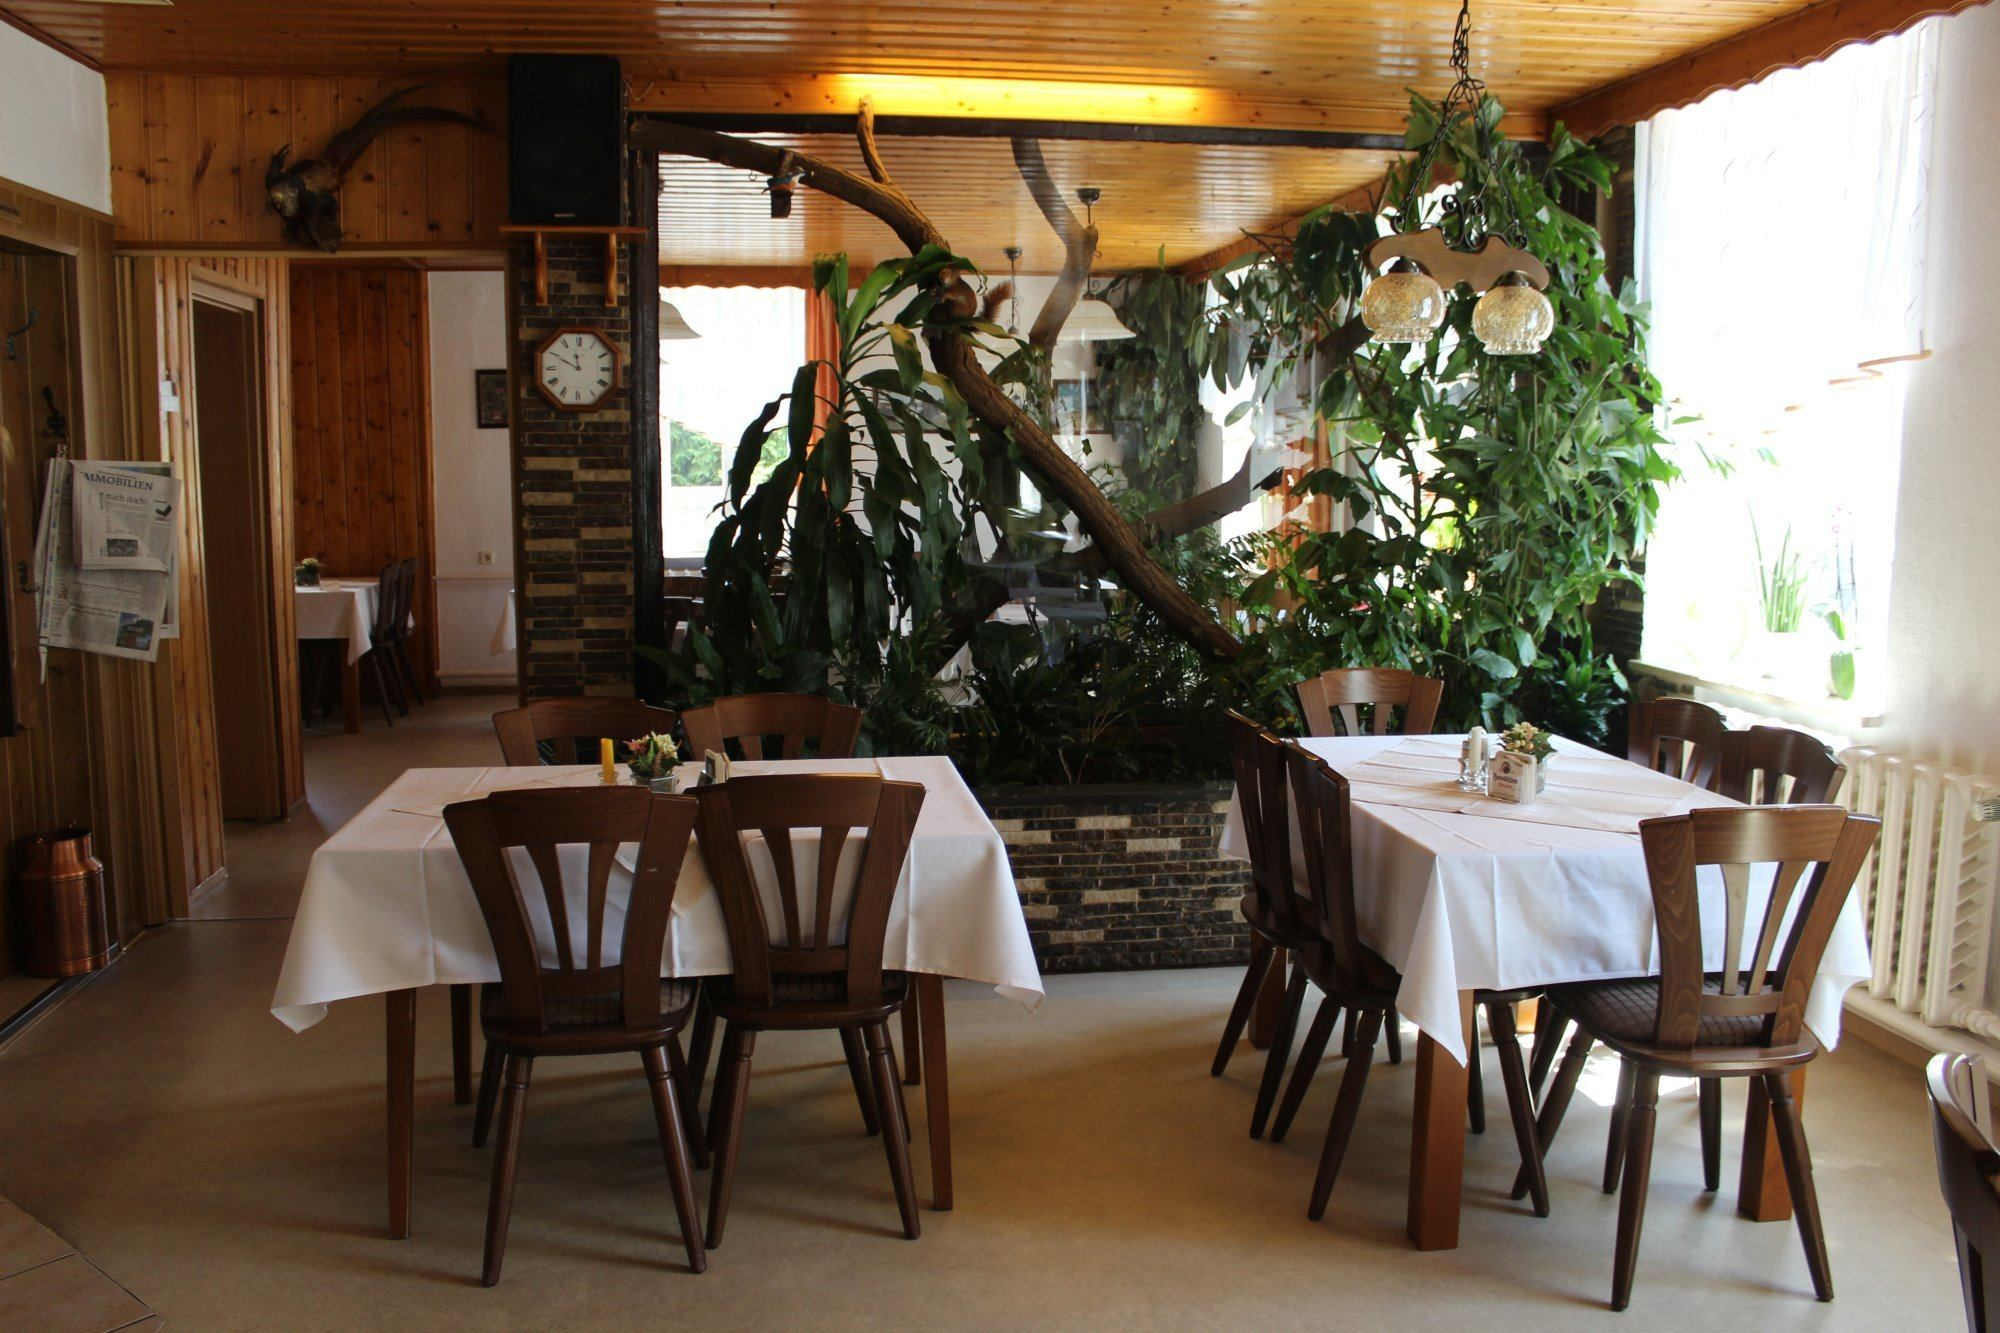 Restaurant Collis am Gessenbach